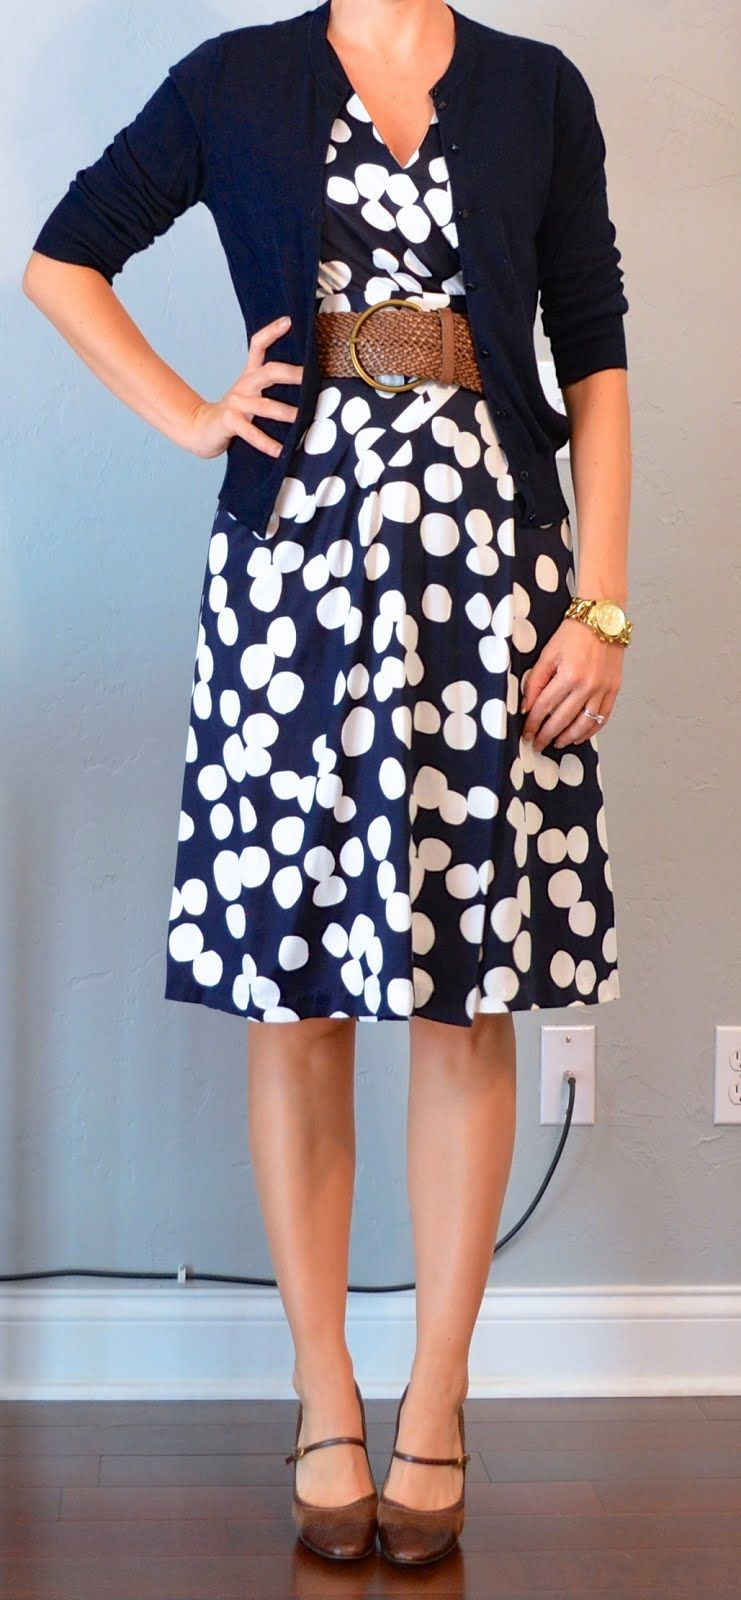 Outfit Post Navy White Polka Dot Dress Navy Cardigan Wide Woven Belt Outfit Posts Dynamic